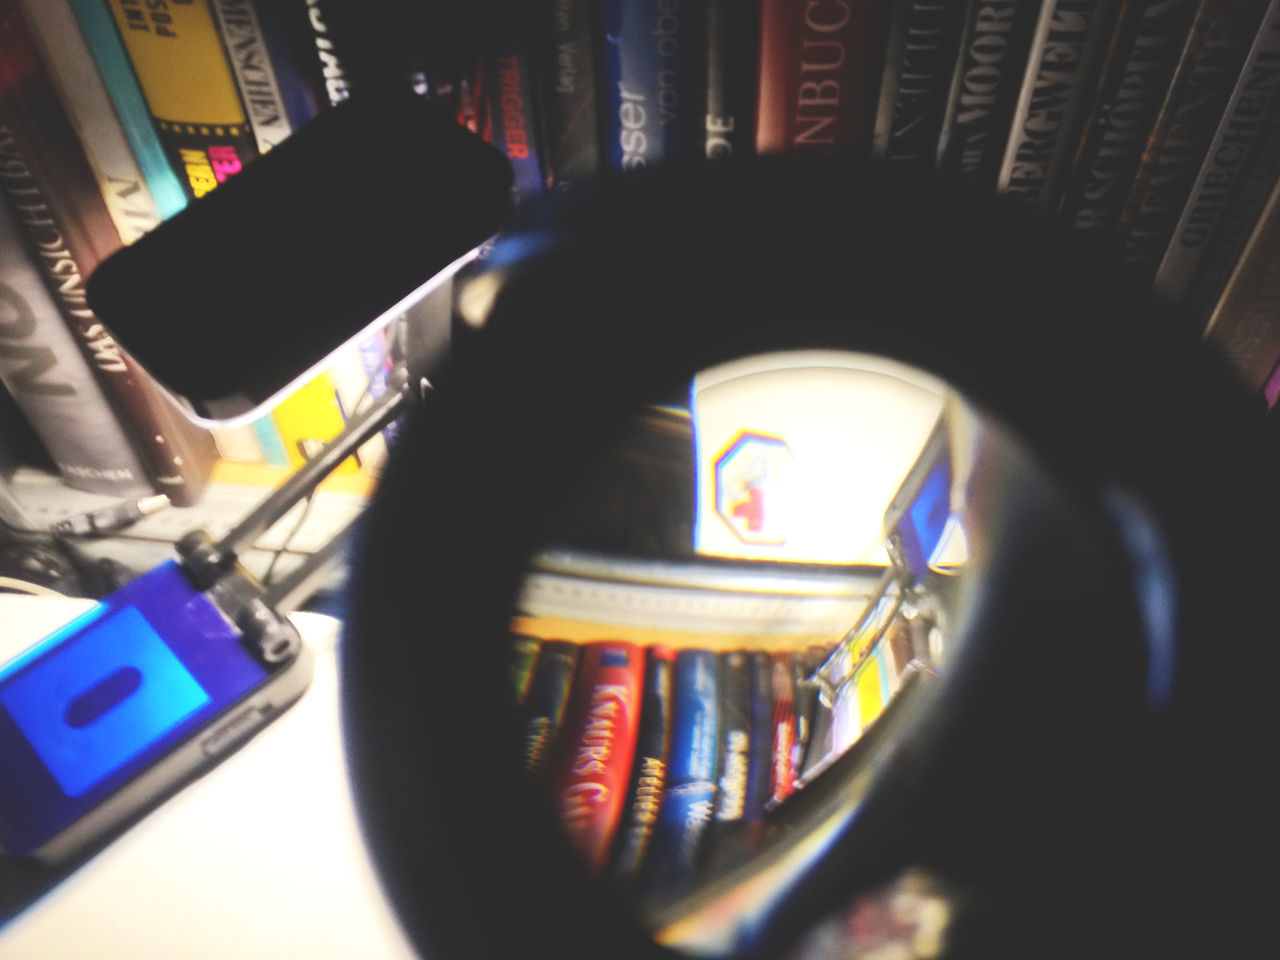 Books Close-up Communication Control Depth Of Field Focus On Foreground Illuminated Indoors  Large Group Of Objects Linsen Multi Colored Music Night Old-fashioned Selective Focus Stellen Bilder+ Schriften Auf Dem Kofp Dar Still Life Table Technology Text Variation Western Script